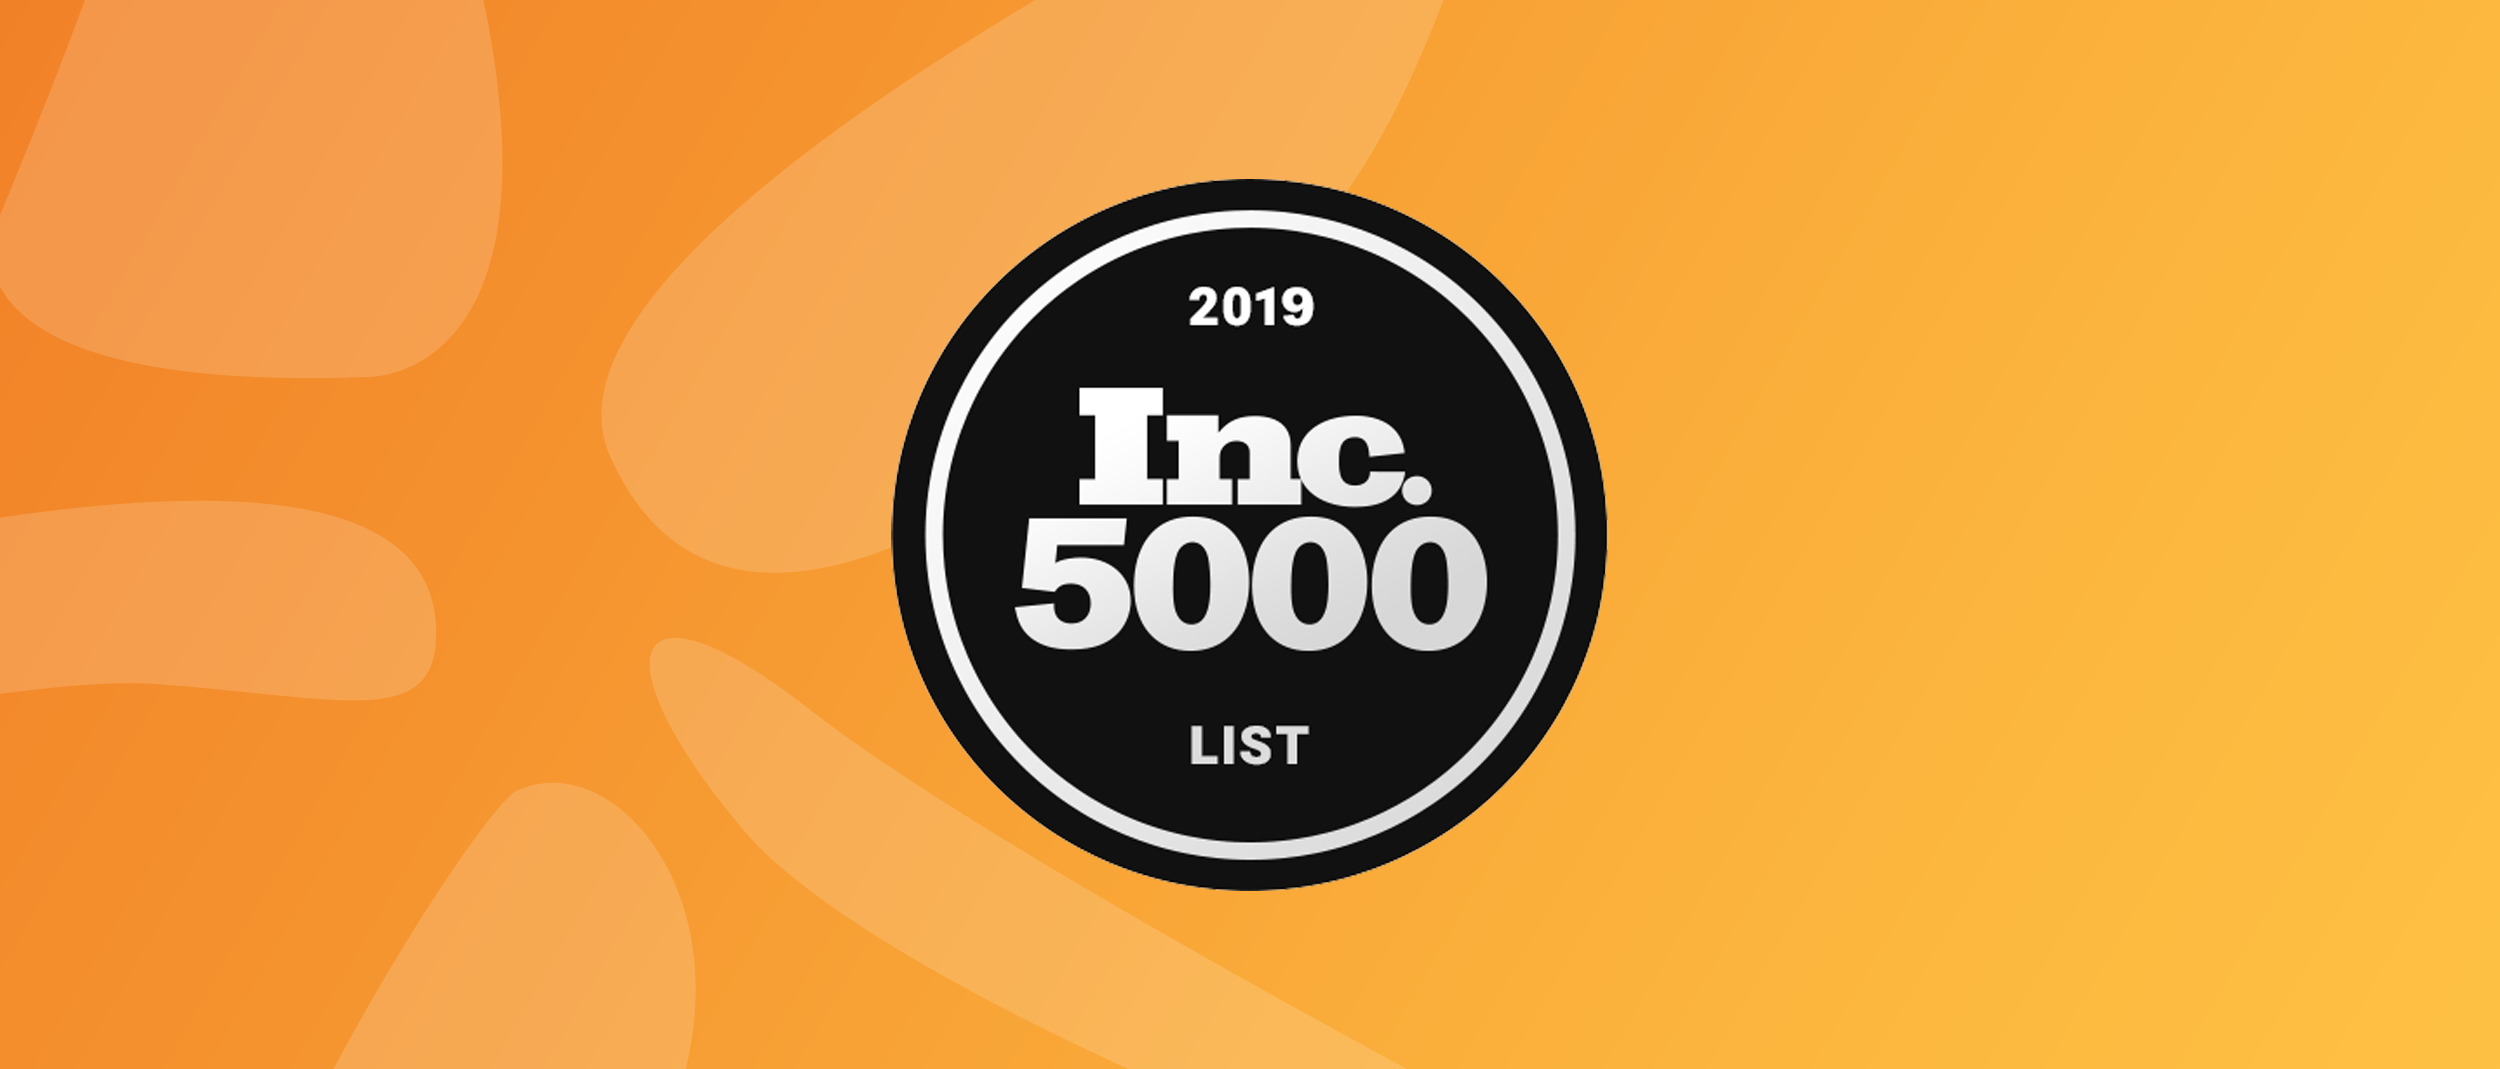 Calyx Recognized Among Inc. 5000's Most Successful Companies